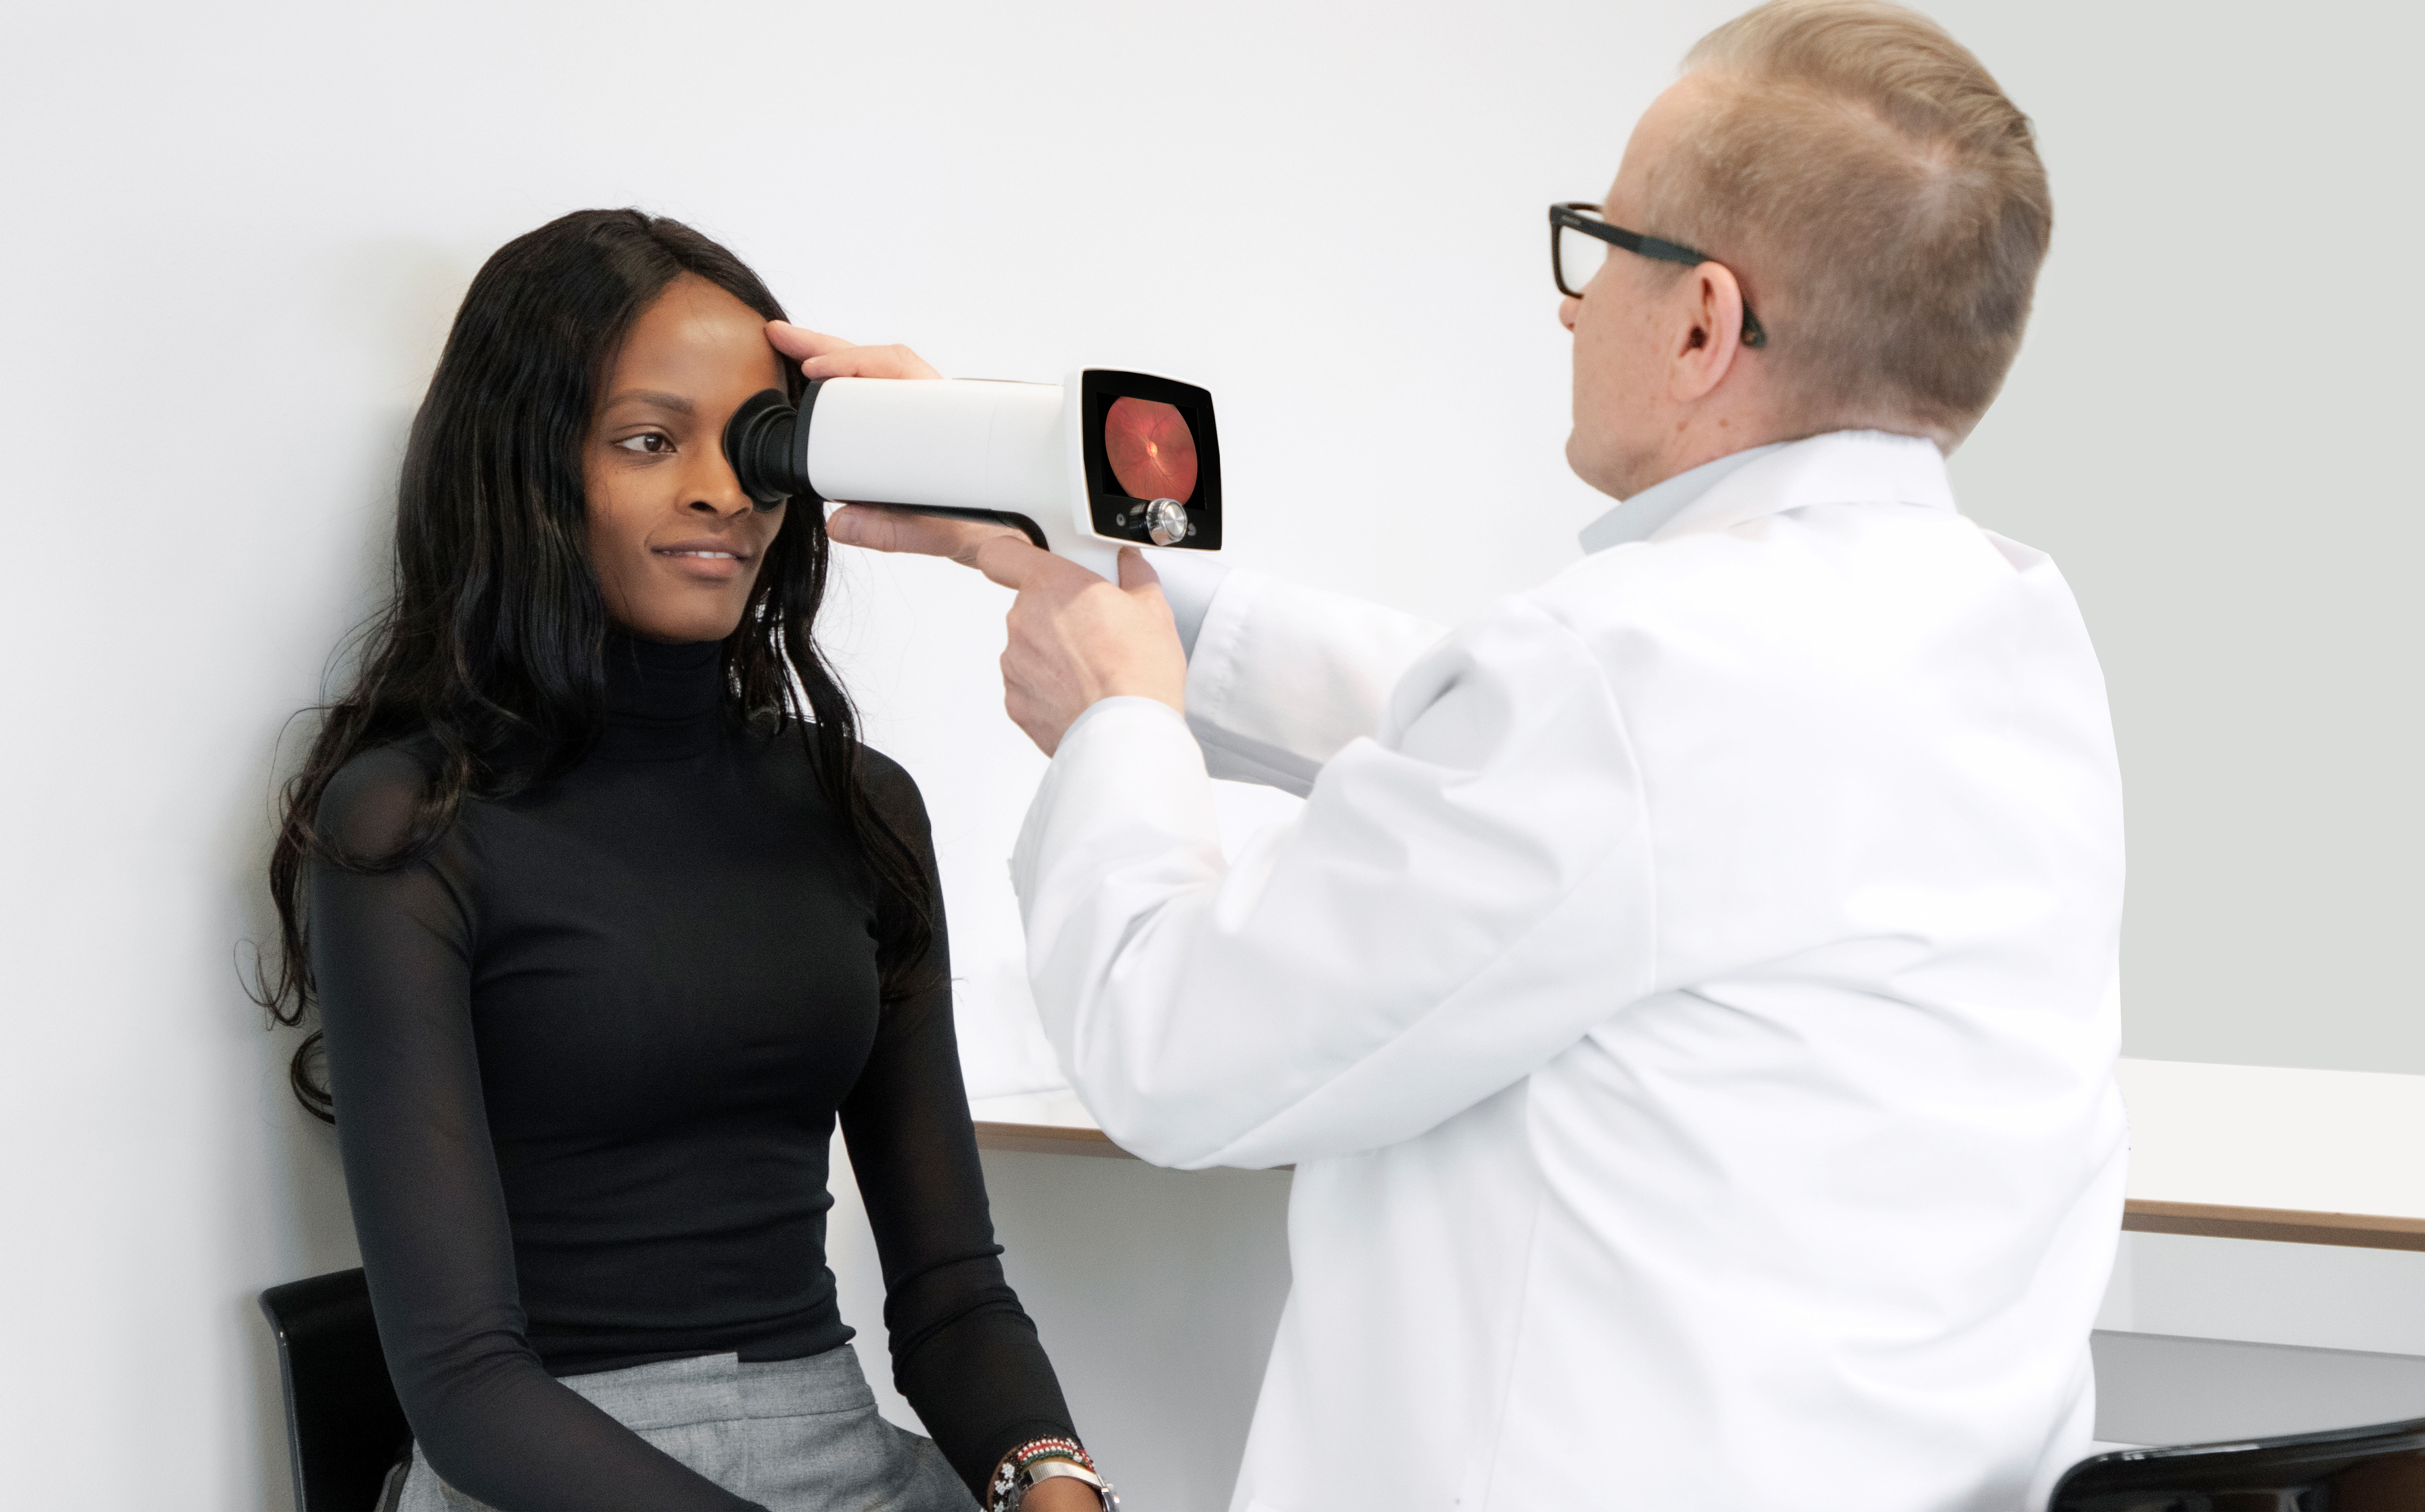 Doctor taking fundus image with Optomed Aurora